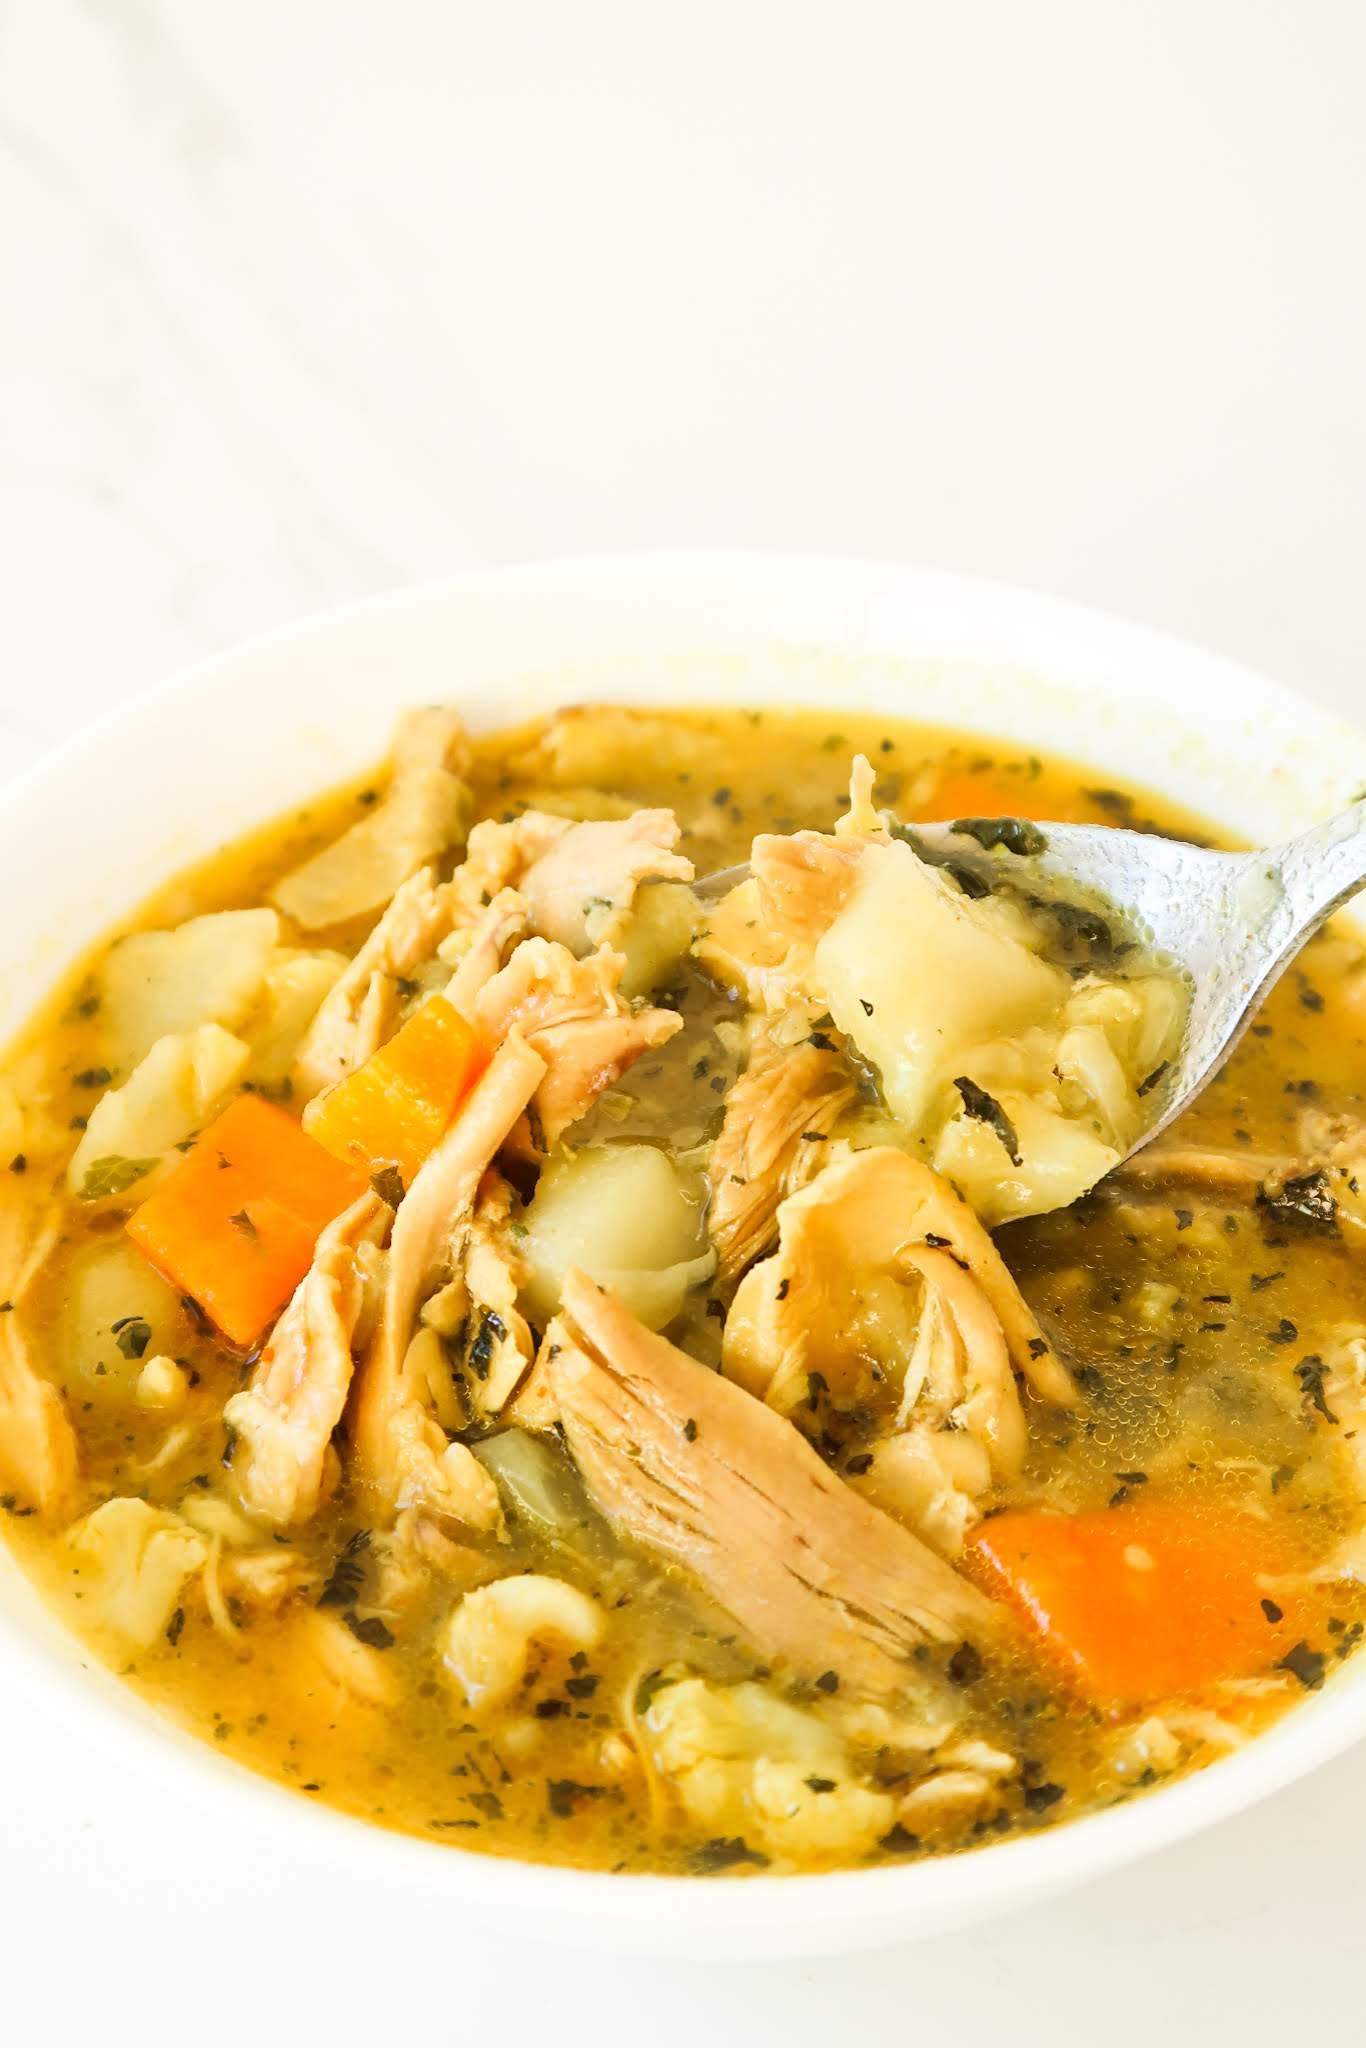 Homemade anti-inflammatory chicken soup! This healthy soup is all you need after a cold day. With vegetables, anti-inflammatory herbs and spices this anti-inflammatory recipe that is easy, warming and delicious.